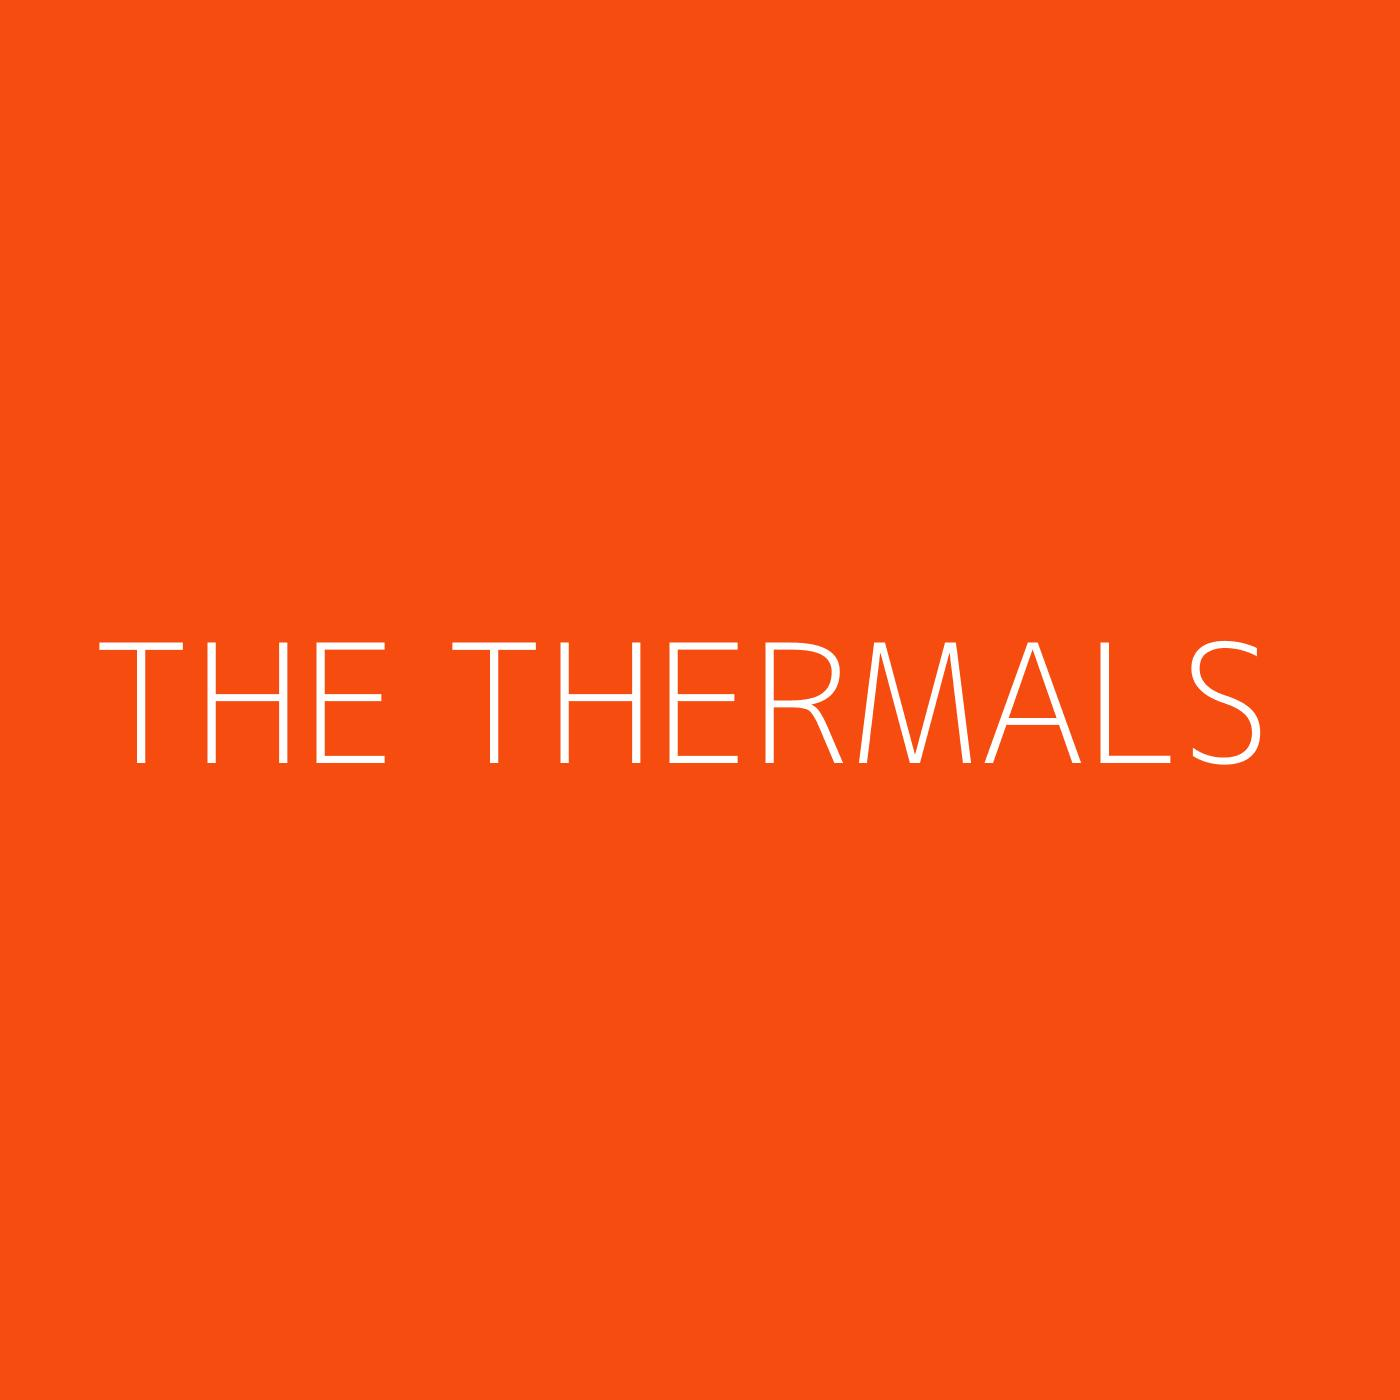 The Thermals Playlist Artwork